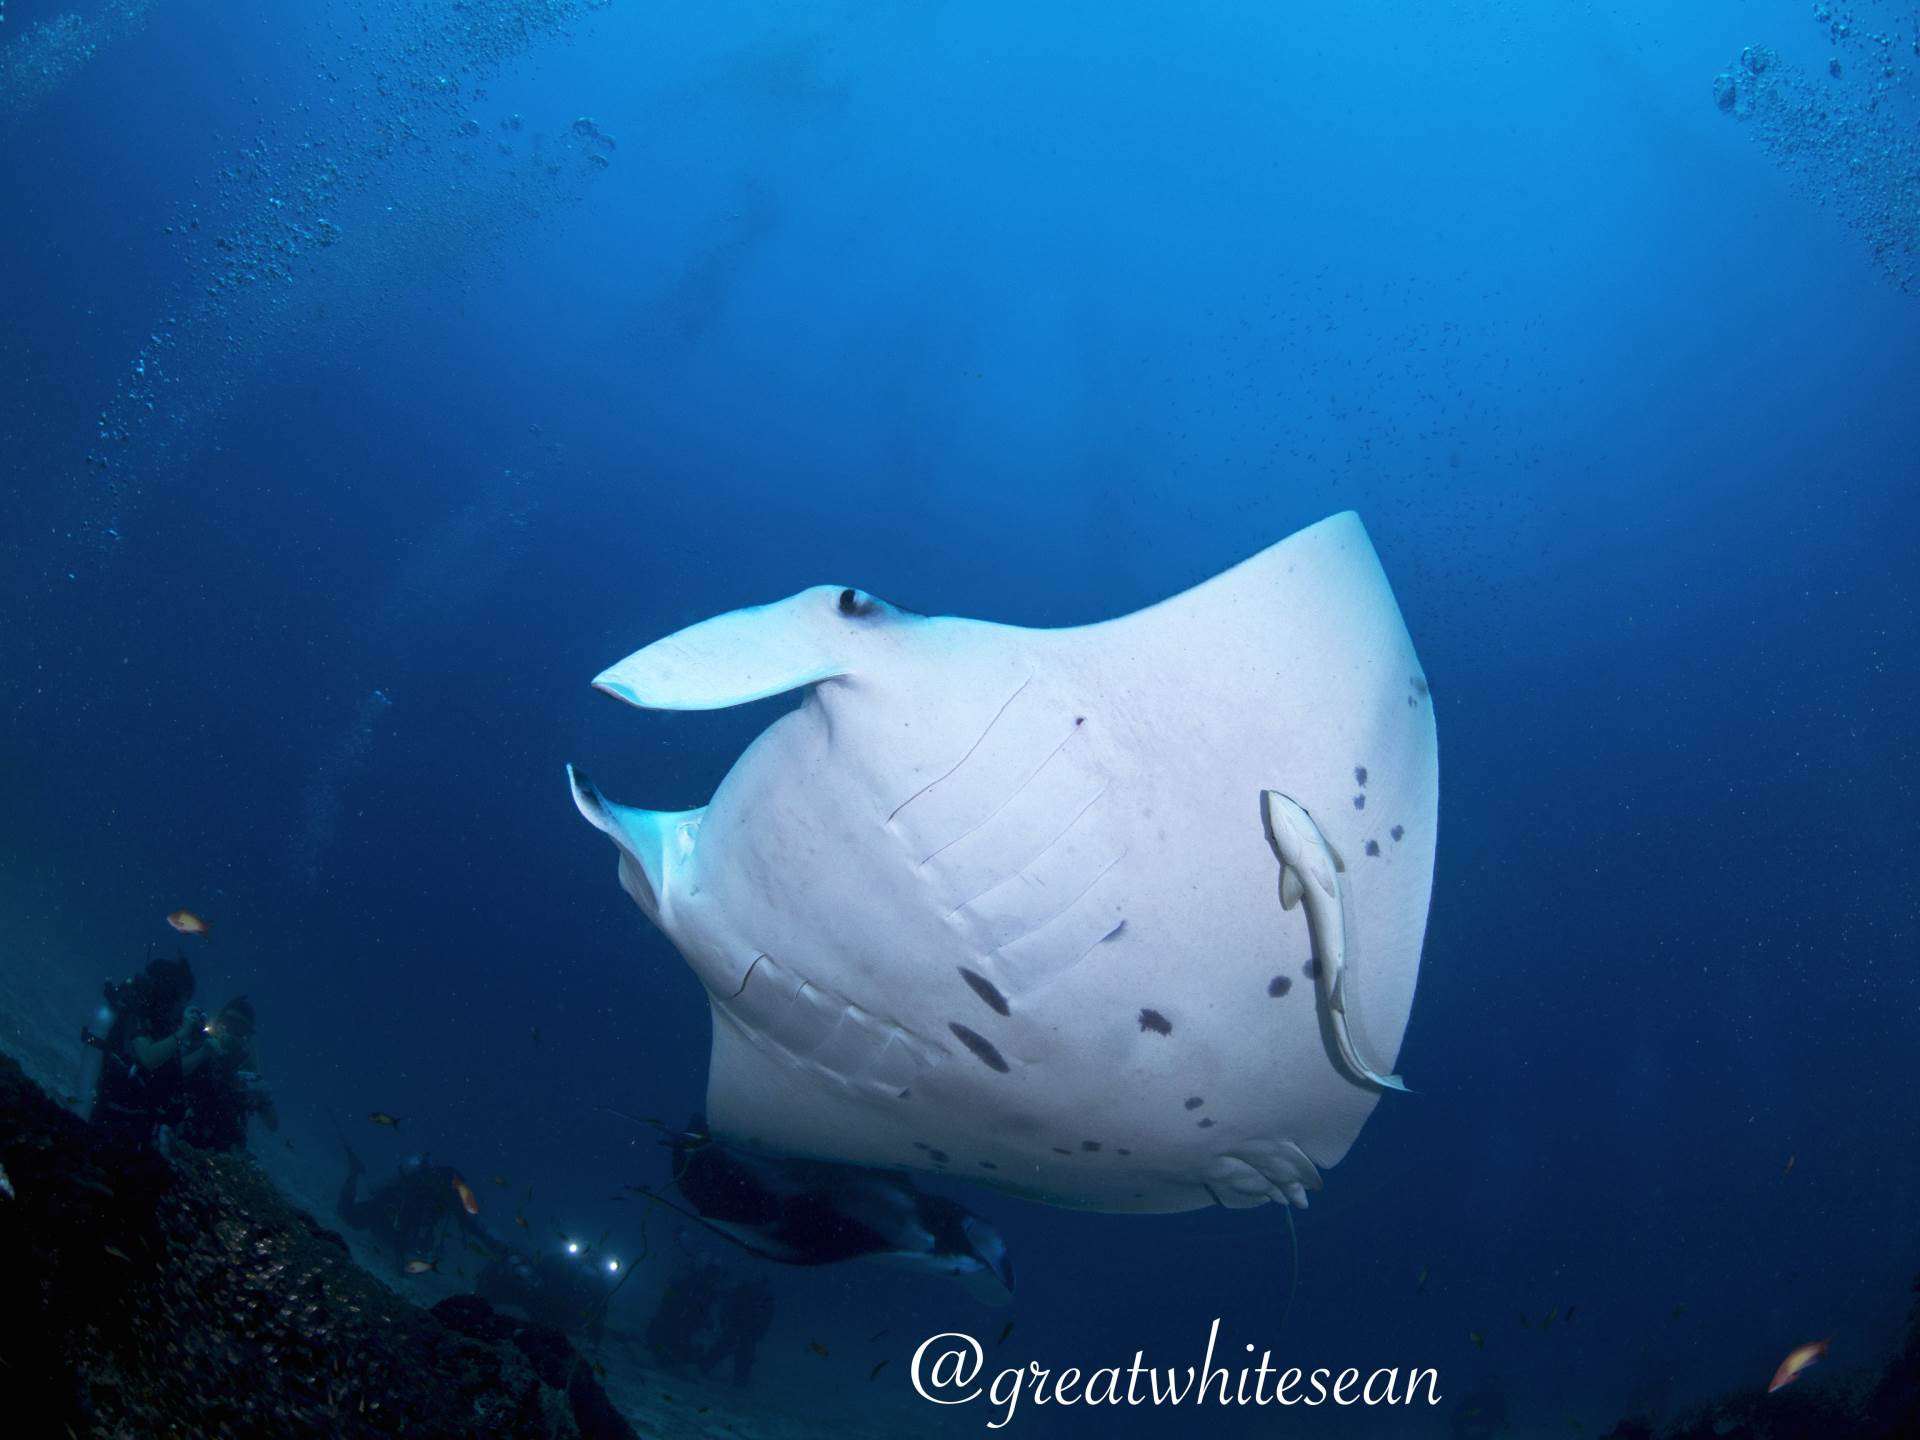 Divers enjoying the show put on by 2 mantas at a cleaning station in the Maldives. This was my 1st ever dive in the Maldives and what a special moment